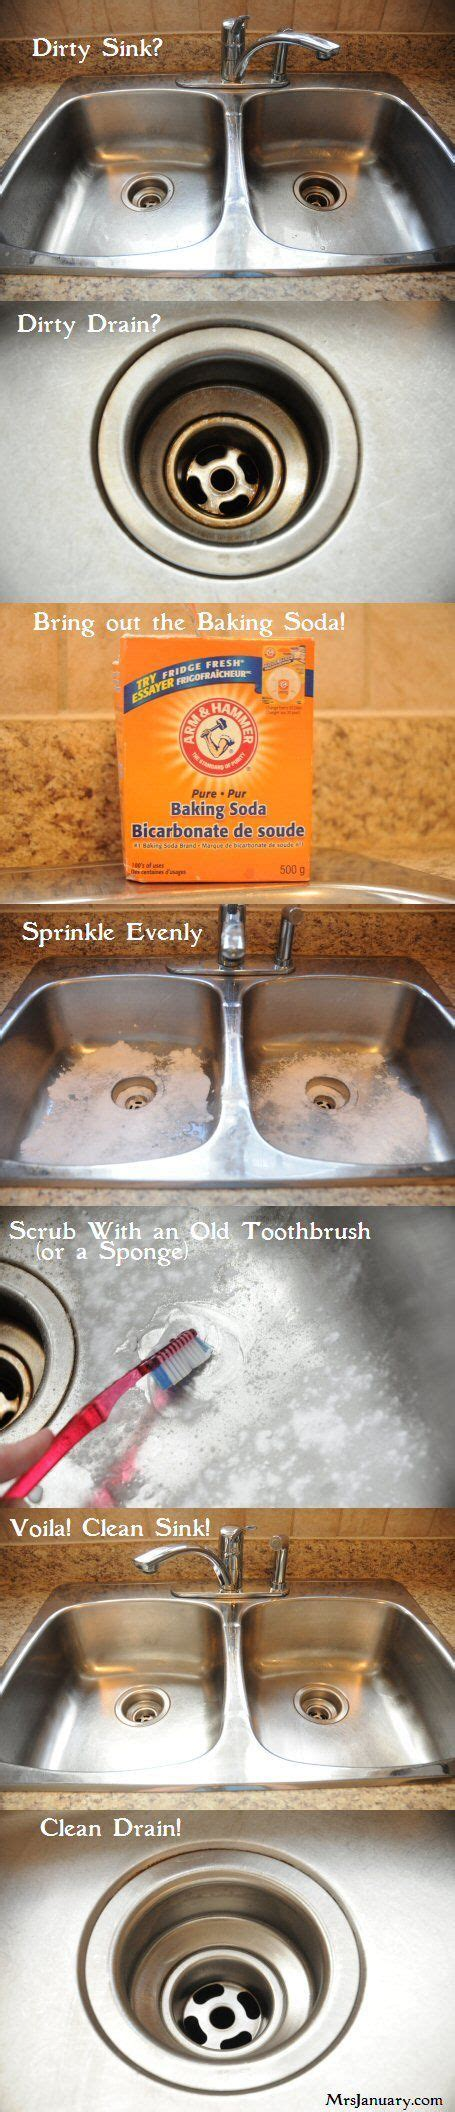 clean sink with baking soda how to shine a stainless steel sink cleaning my entire